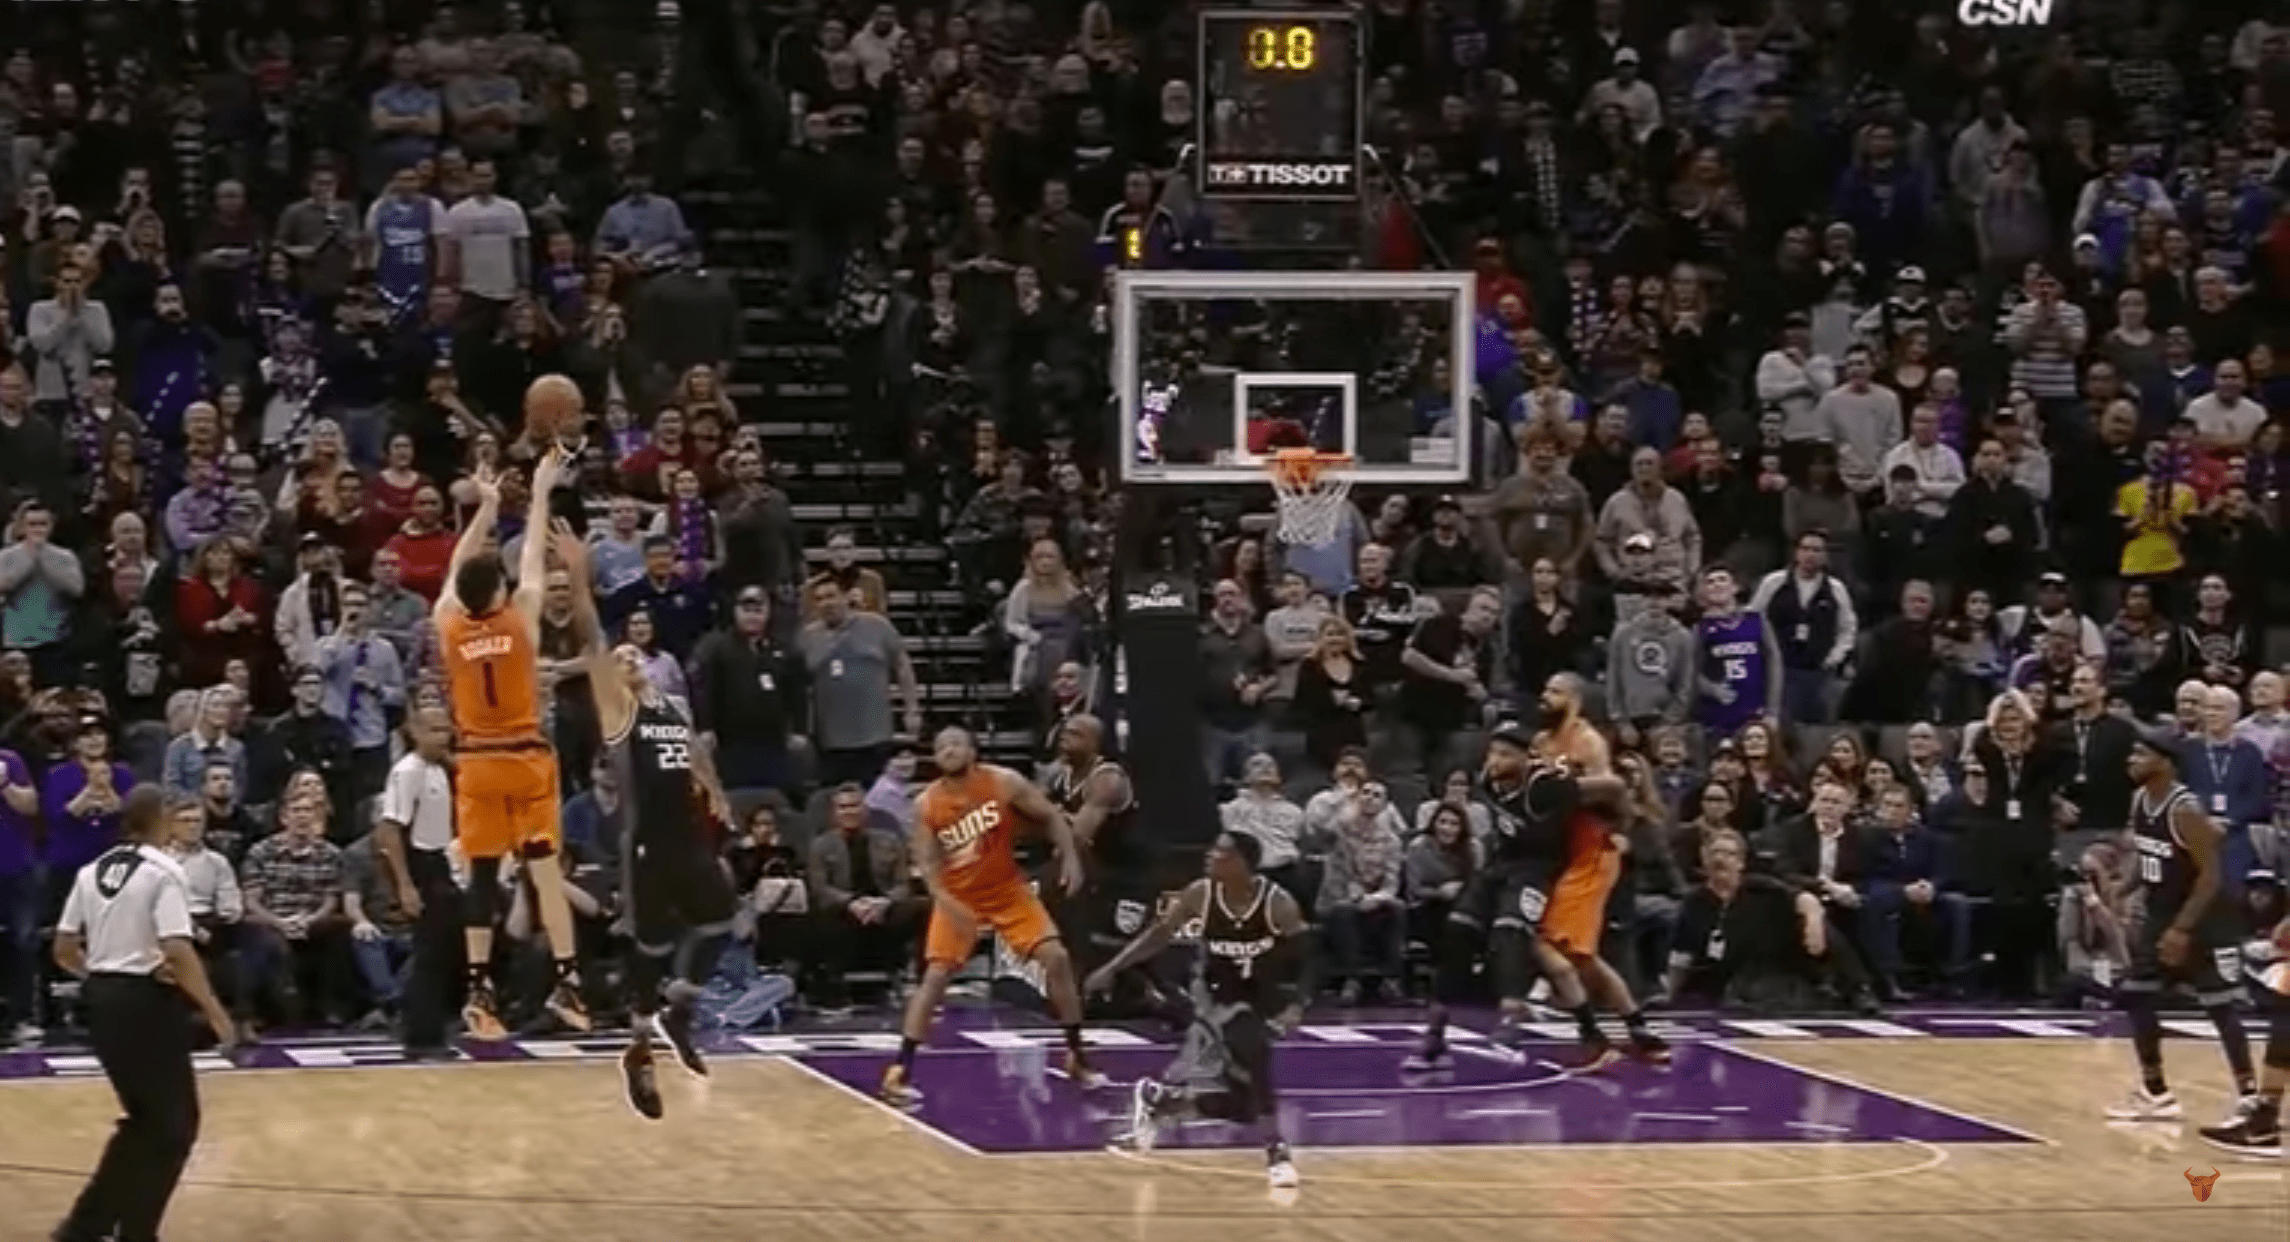 Kings vs. Suns - Devin Booker terrasse les Kings au Buzzer